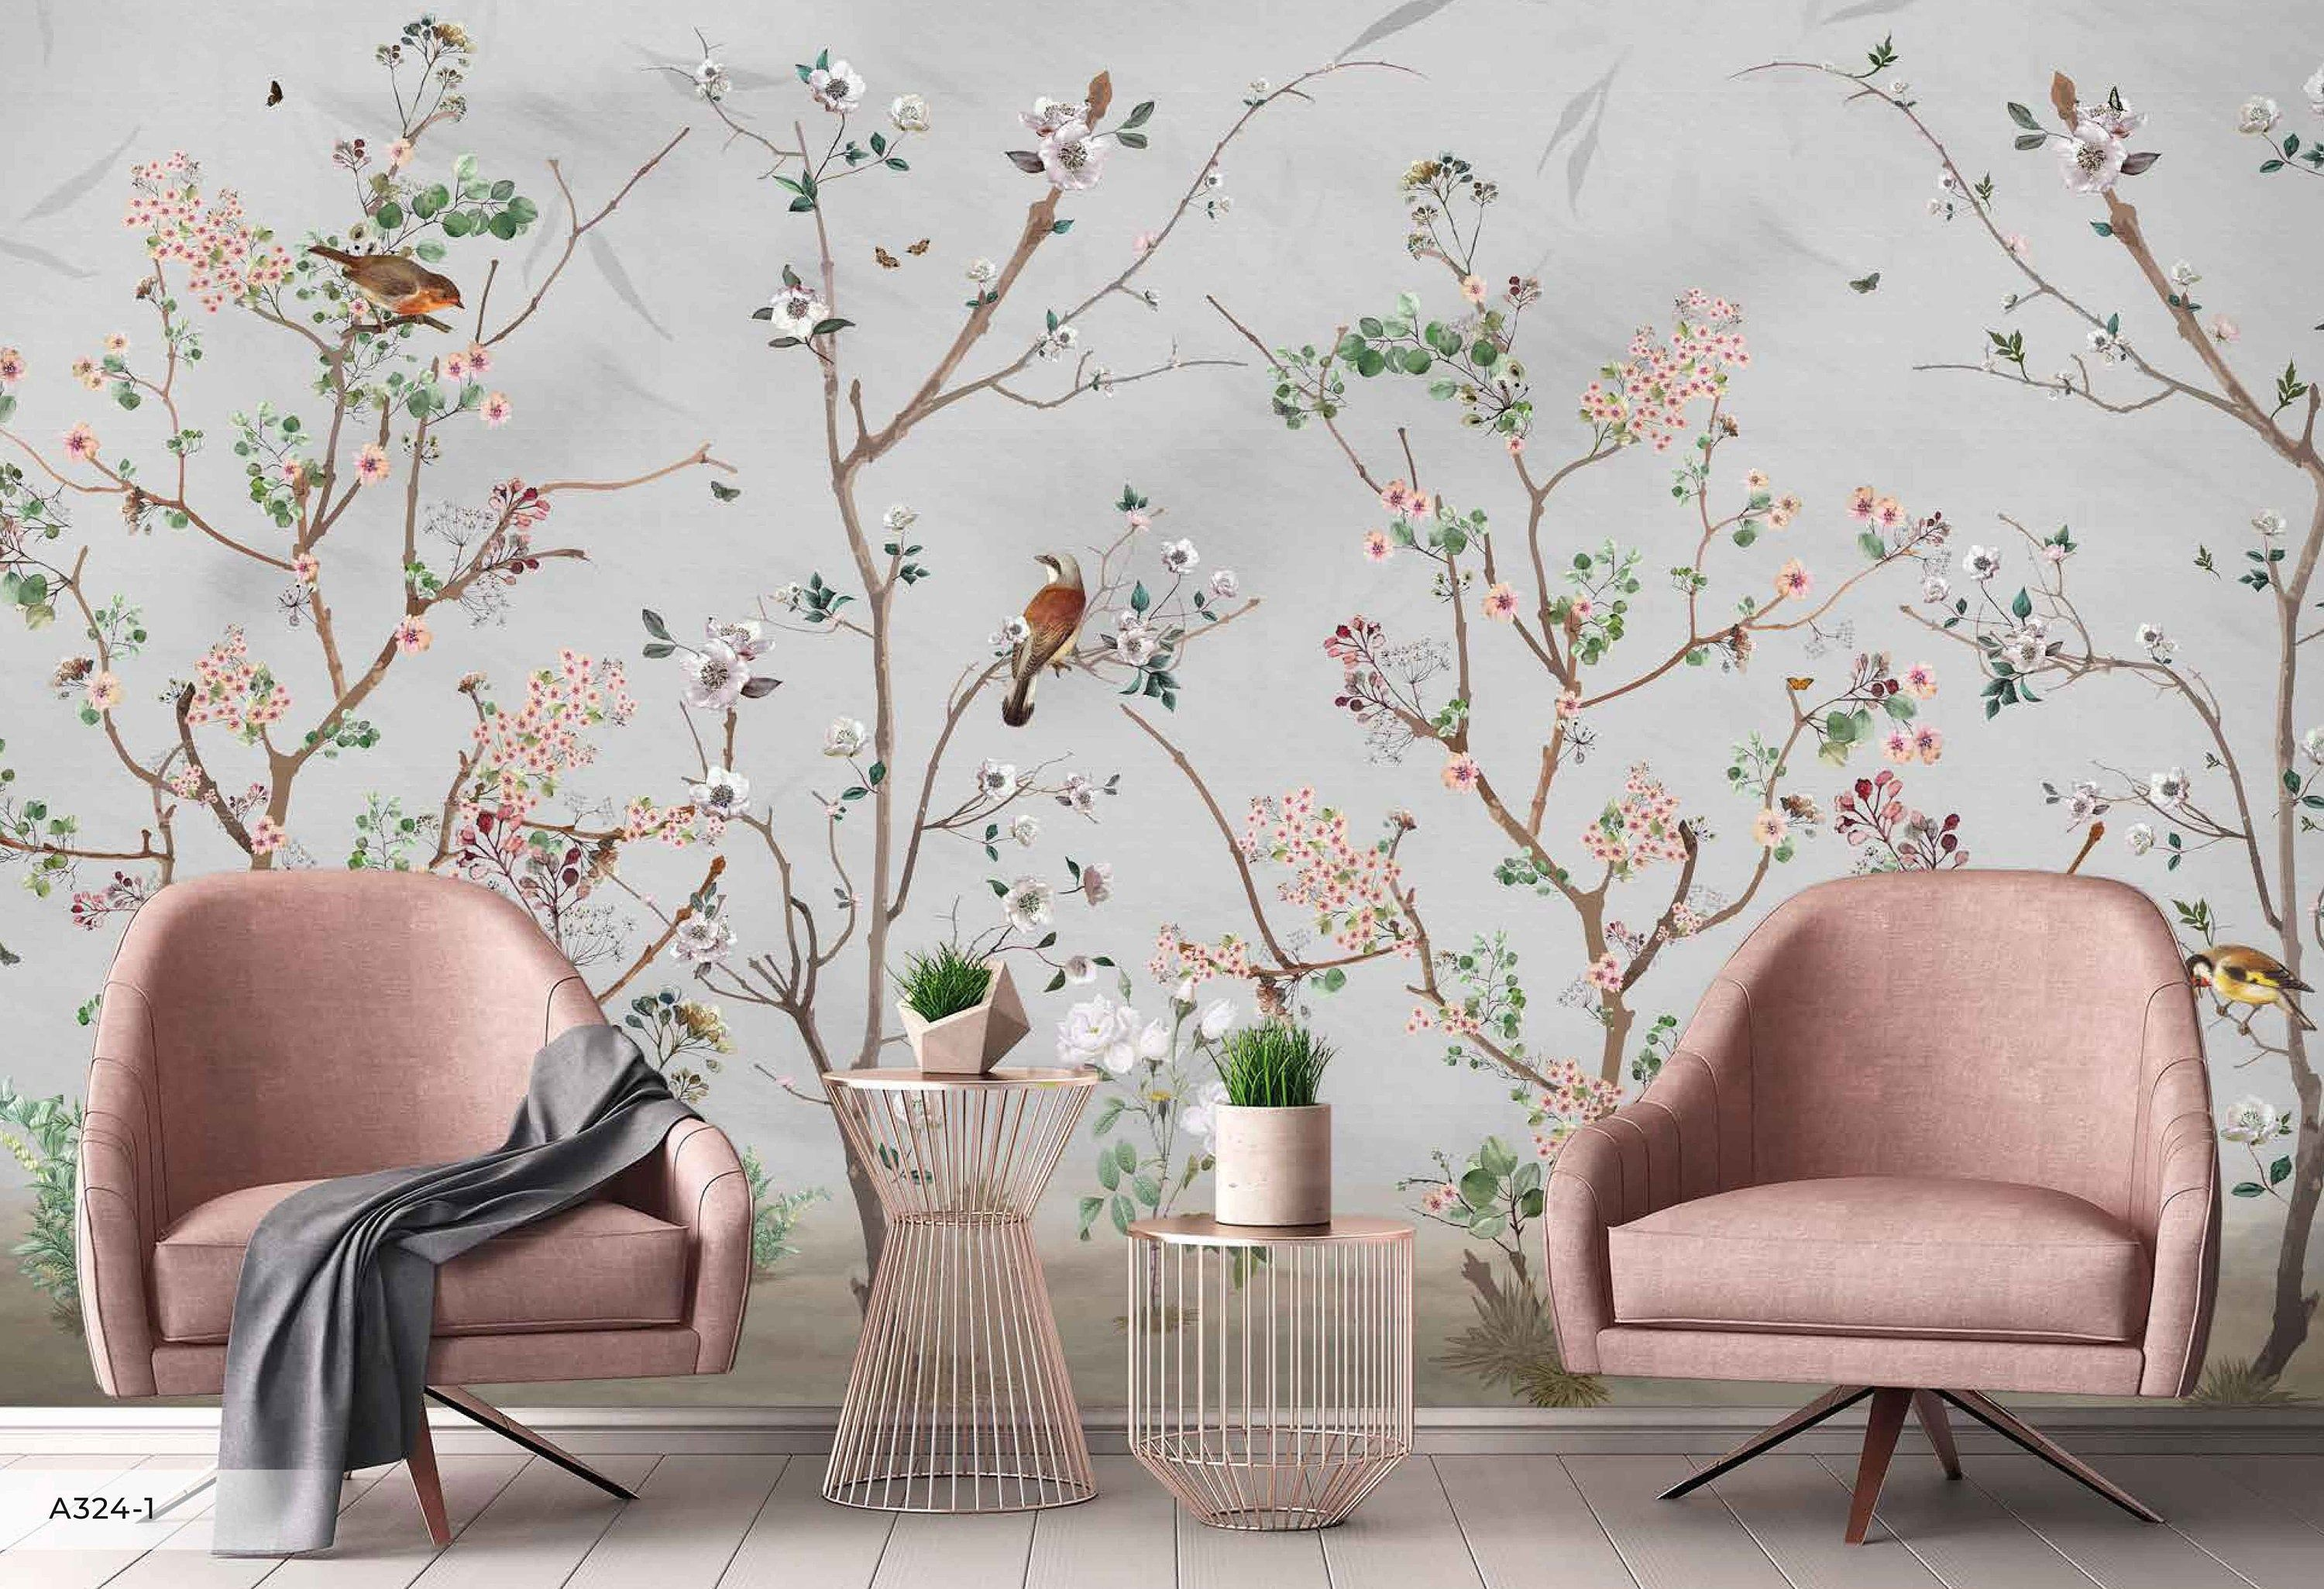 Flowers Birds Floral Background Chinoiserie Wallpaper Self Etsy In 2021 Wallpaper Walls Decor Chinoiserie Wallpaper Wall Wallpaper